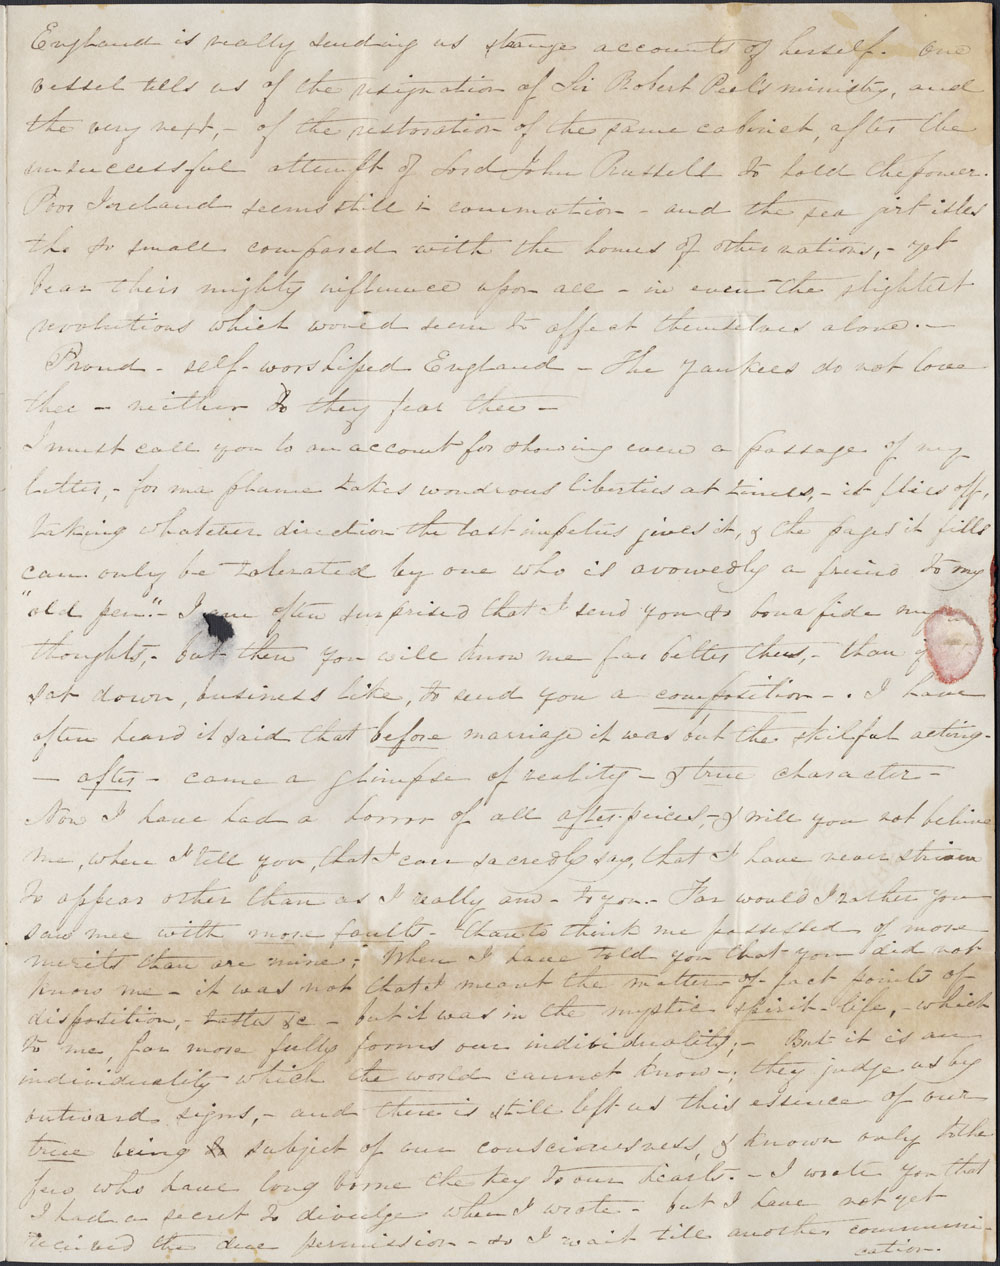 [Correspondence of Mary Westcott] 1846. (item 3)